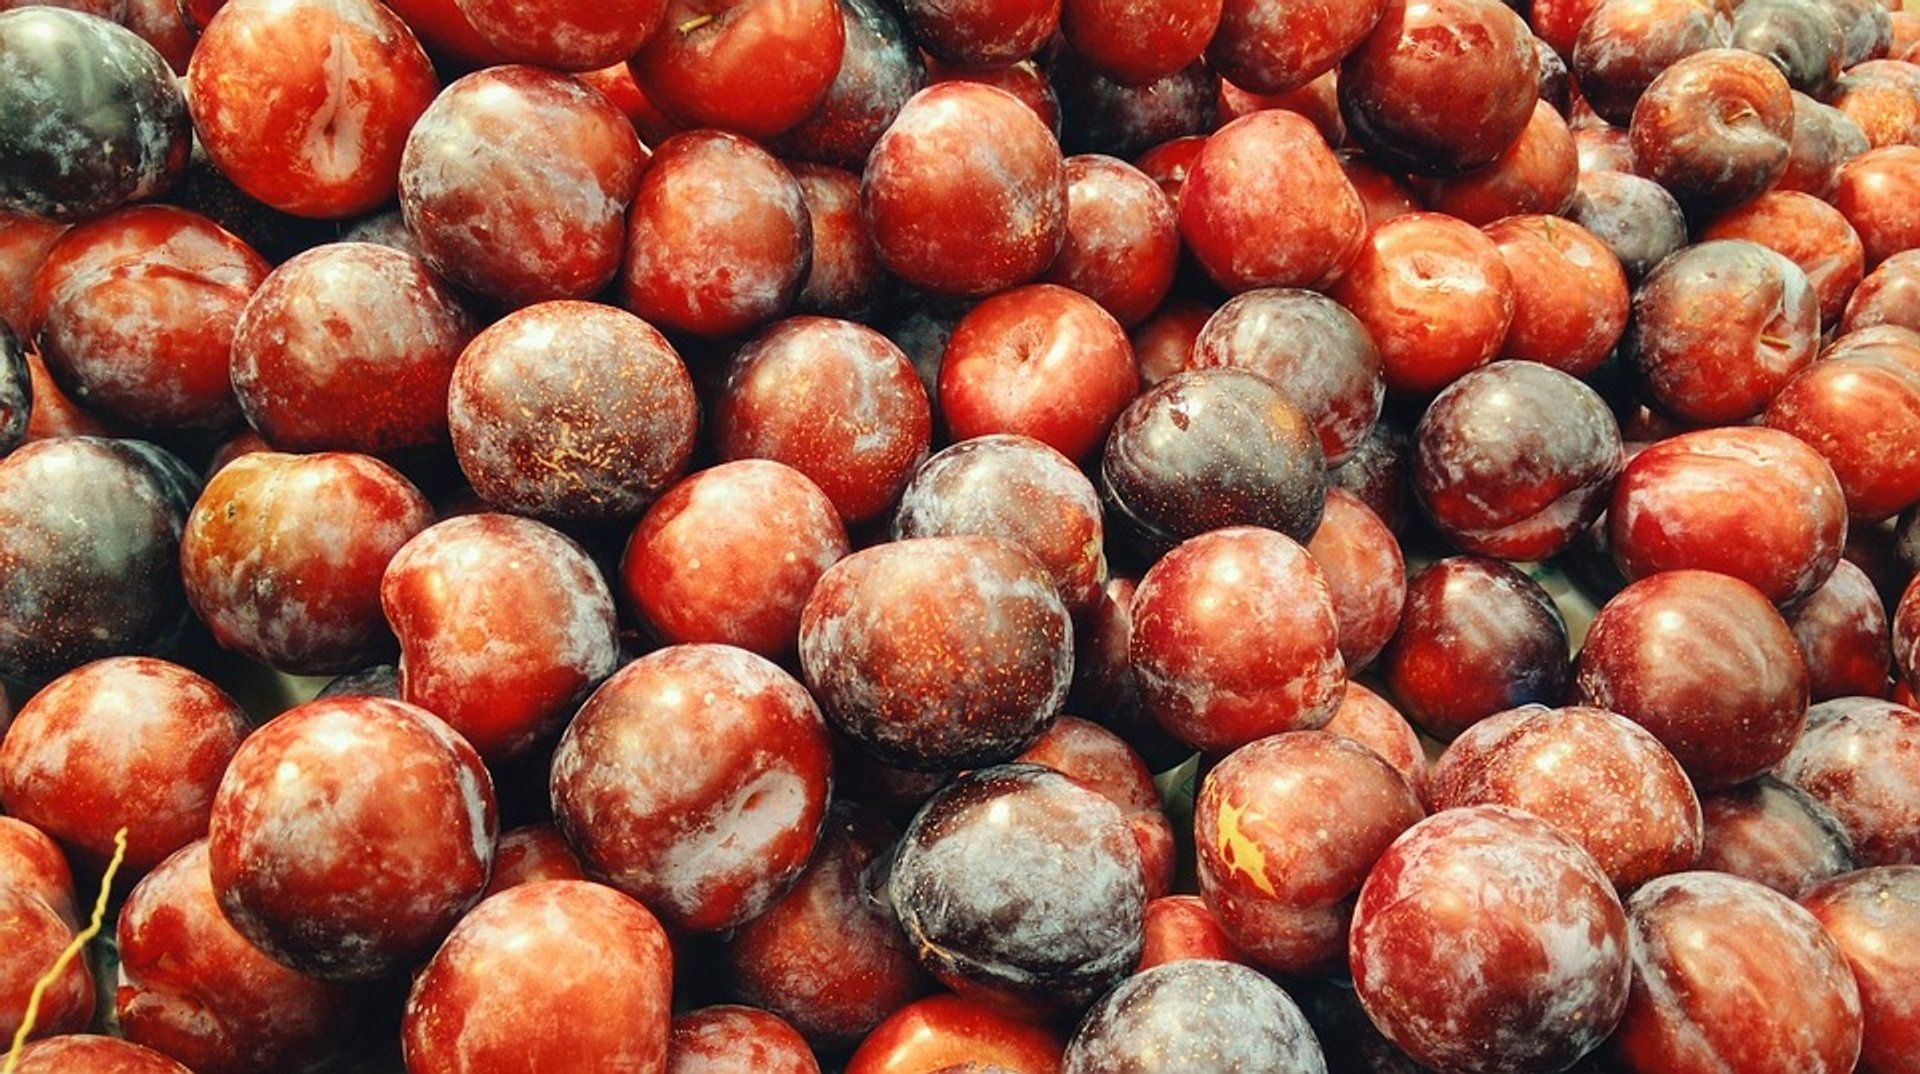 Plums—the main ingredient of Tkemali sauce 2020